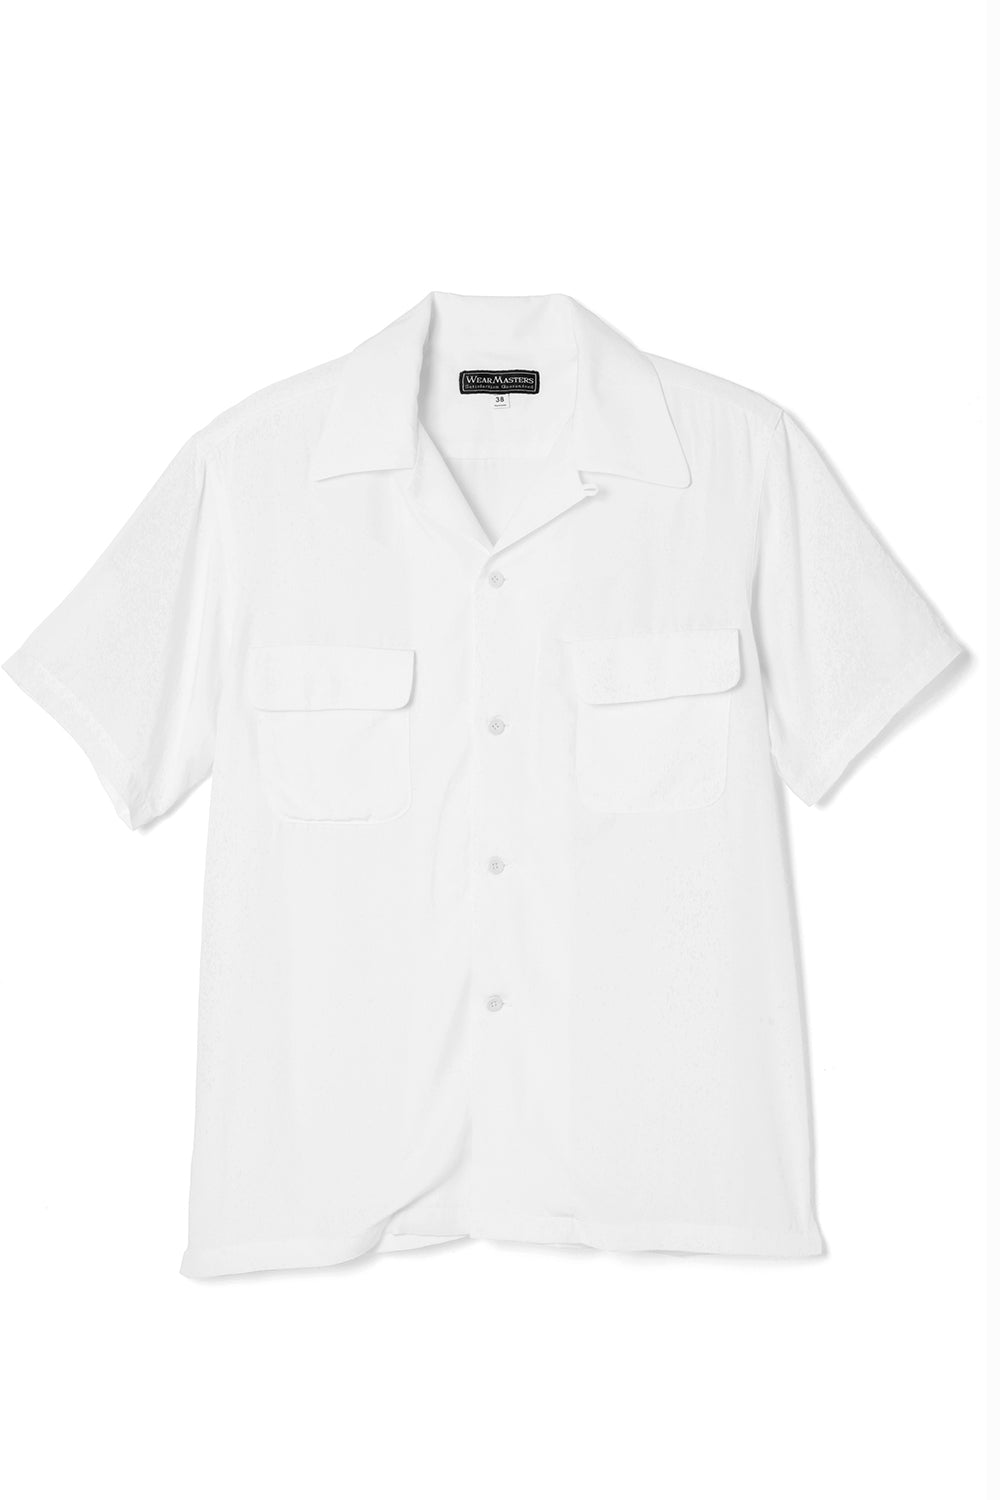 Lot.661 Rayon S/S Shirts -White-